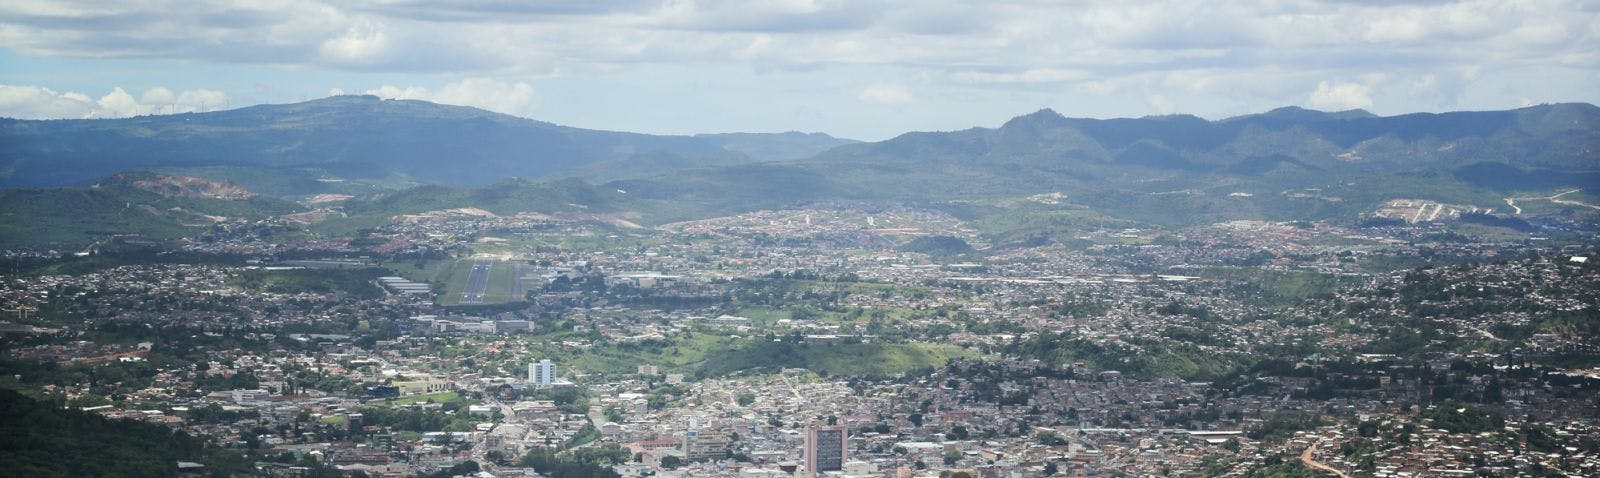 Picture of Tegucigalpa